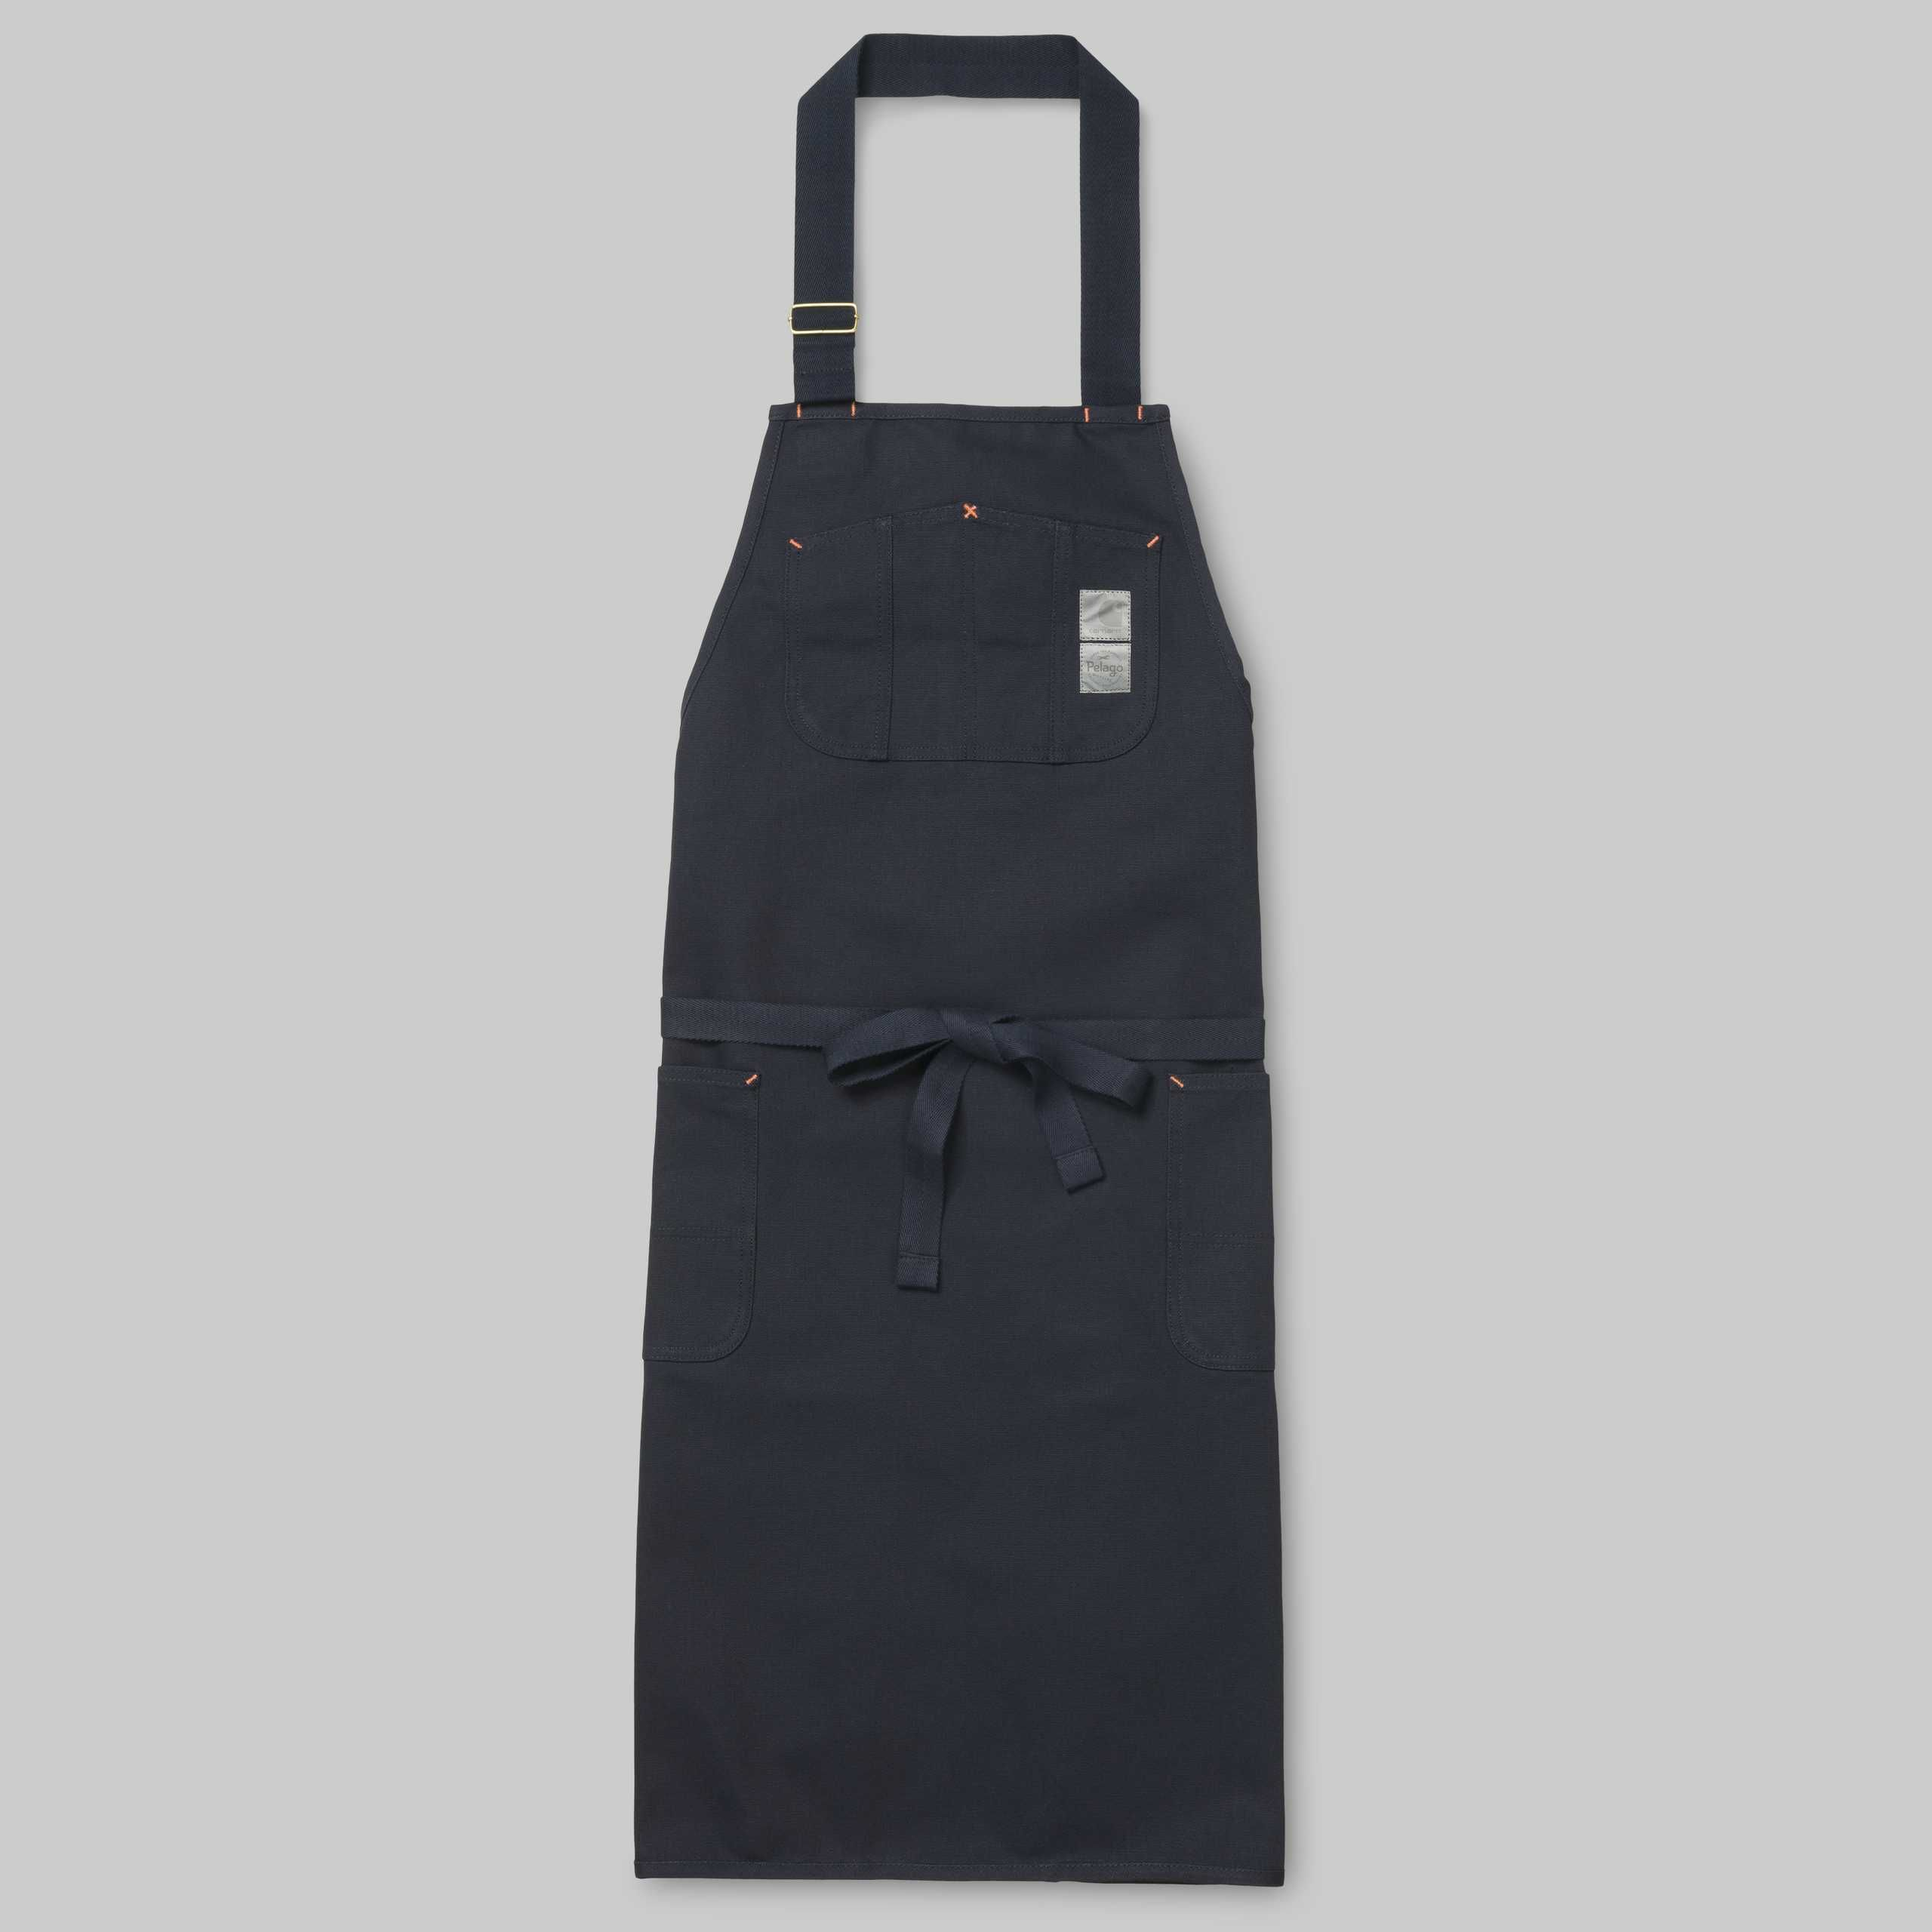 White apron meaning - Aprons